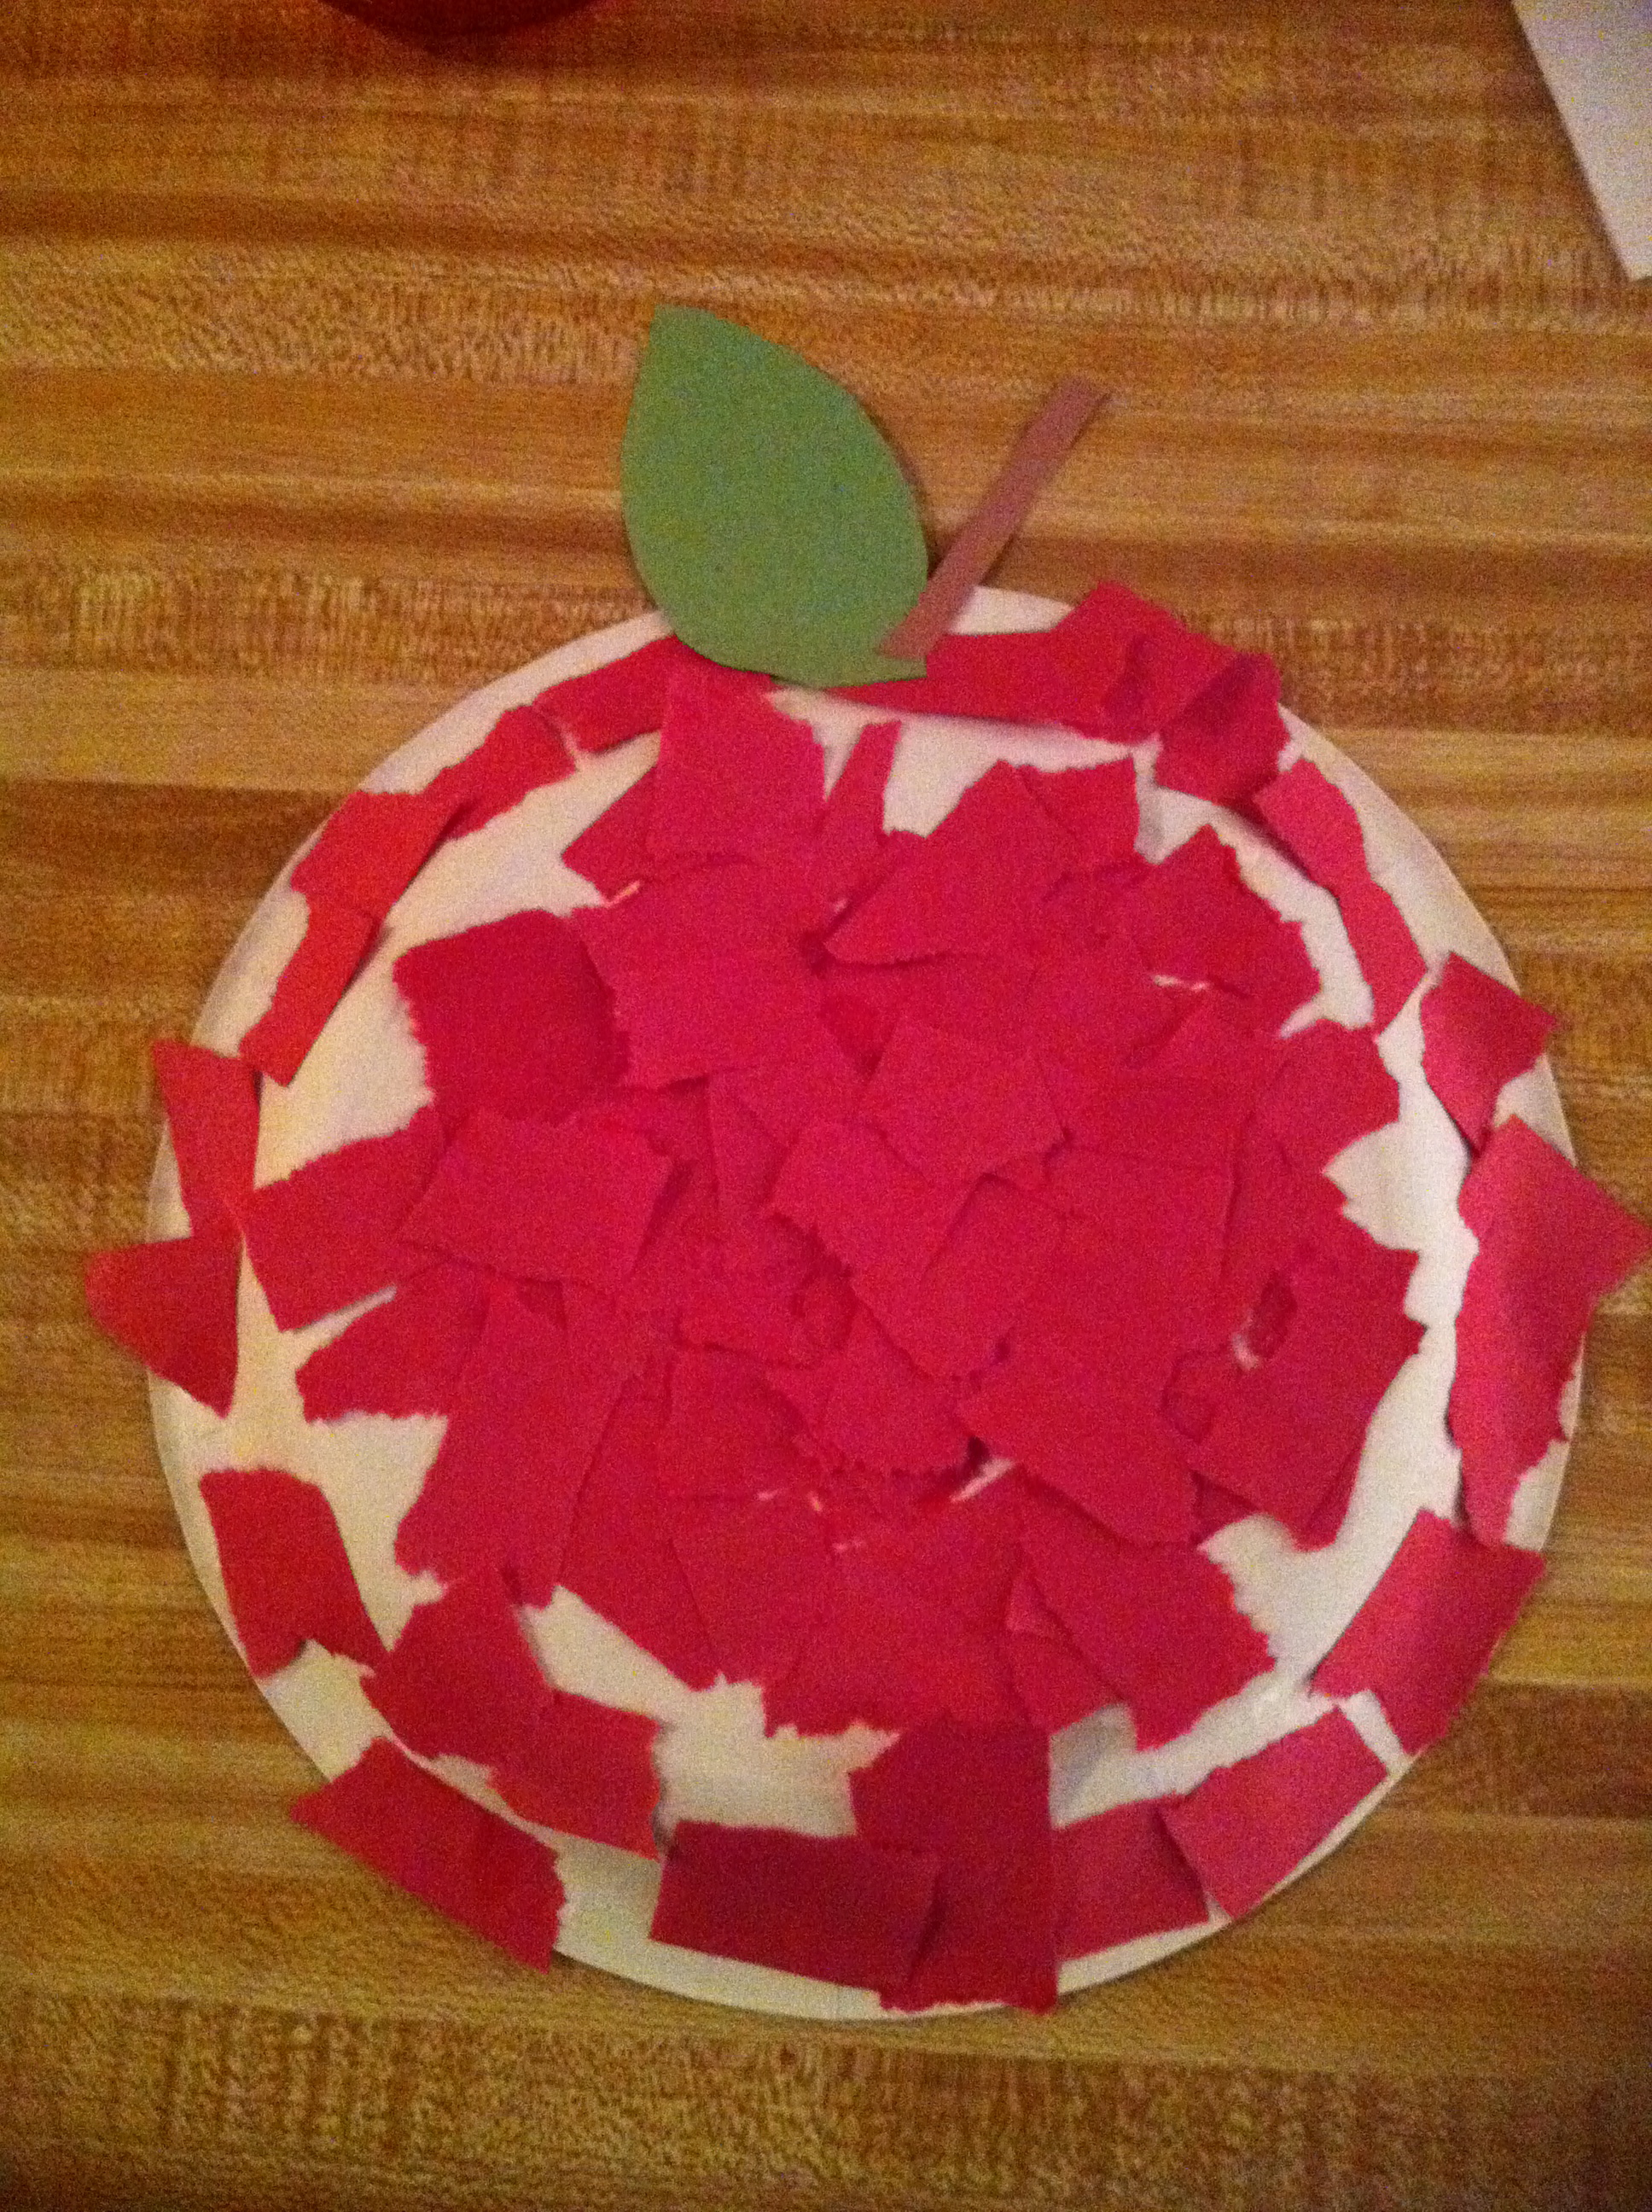 red day craft ideas apple project for toddlers choudhary 5322